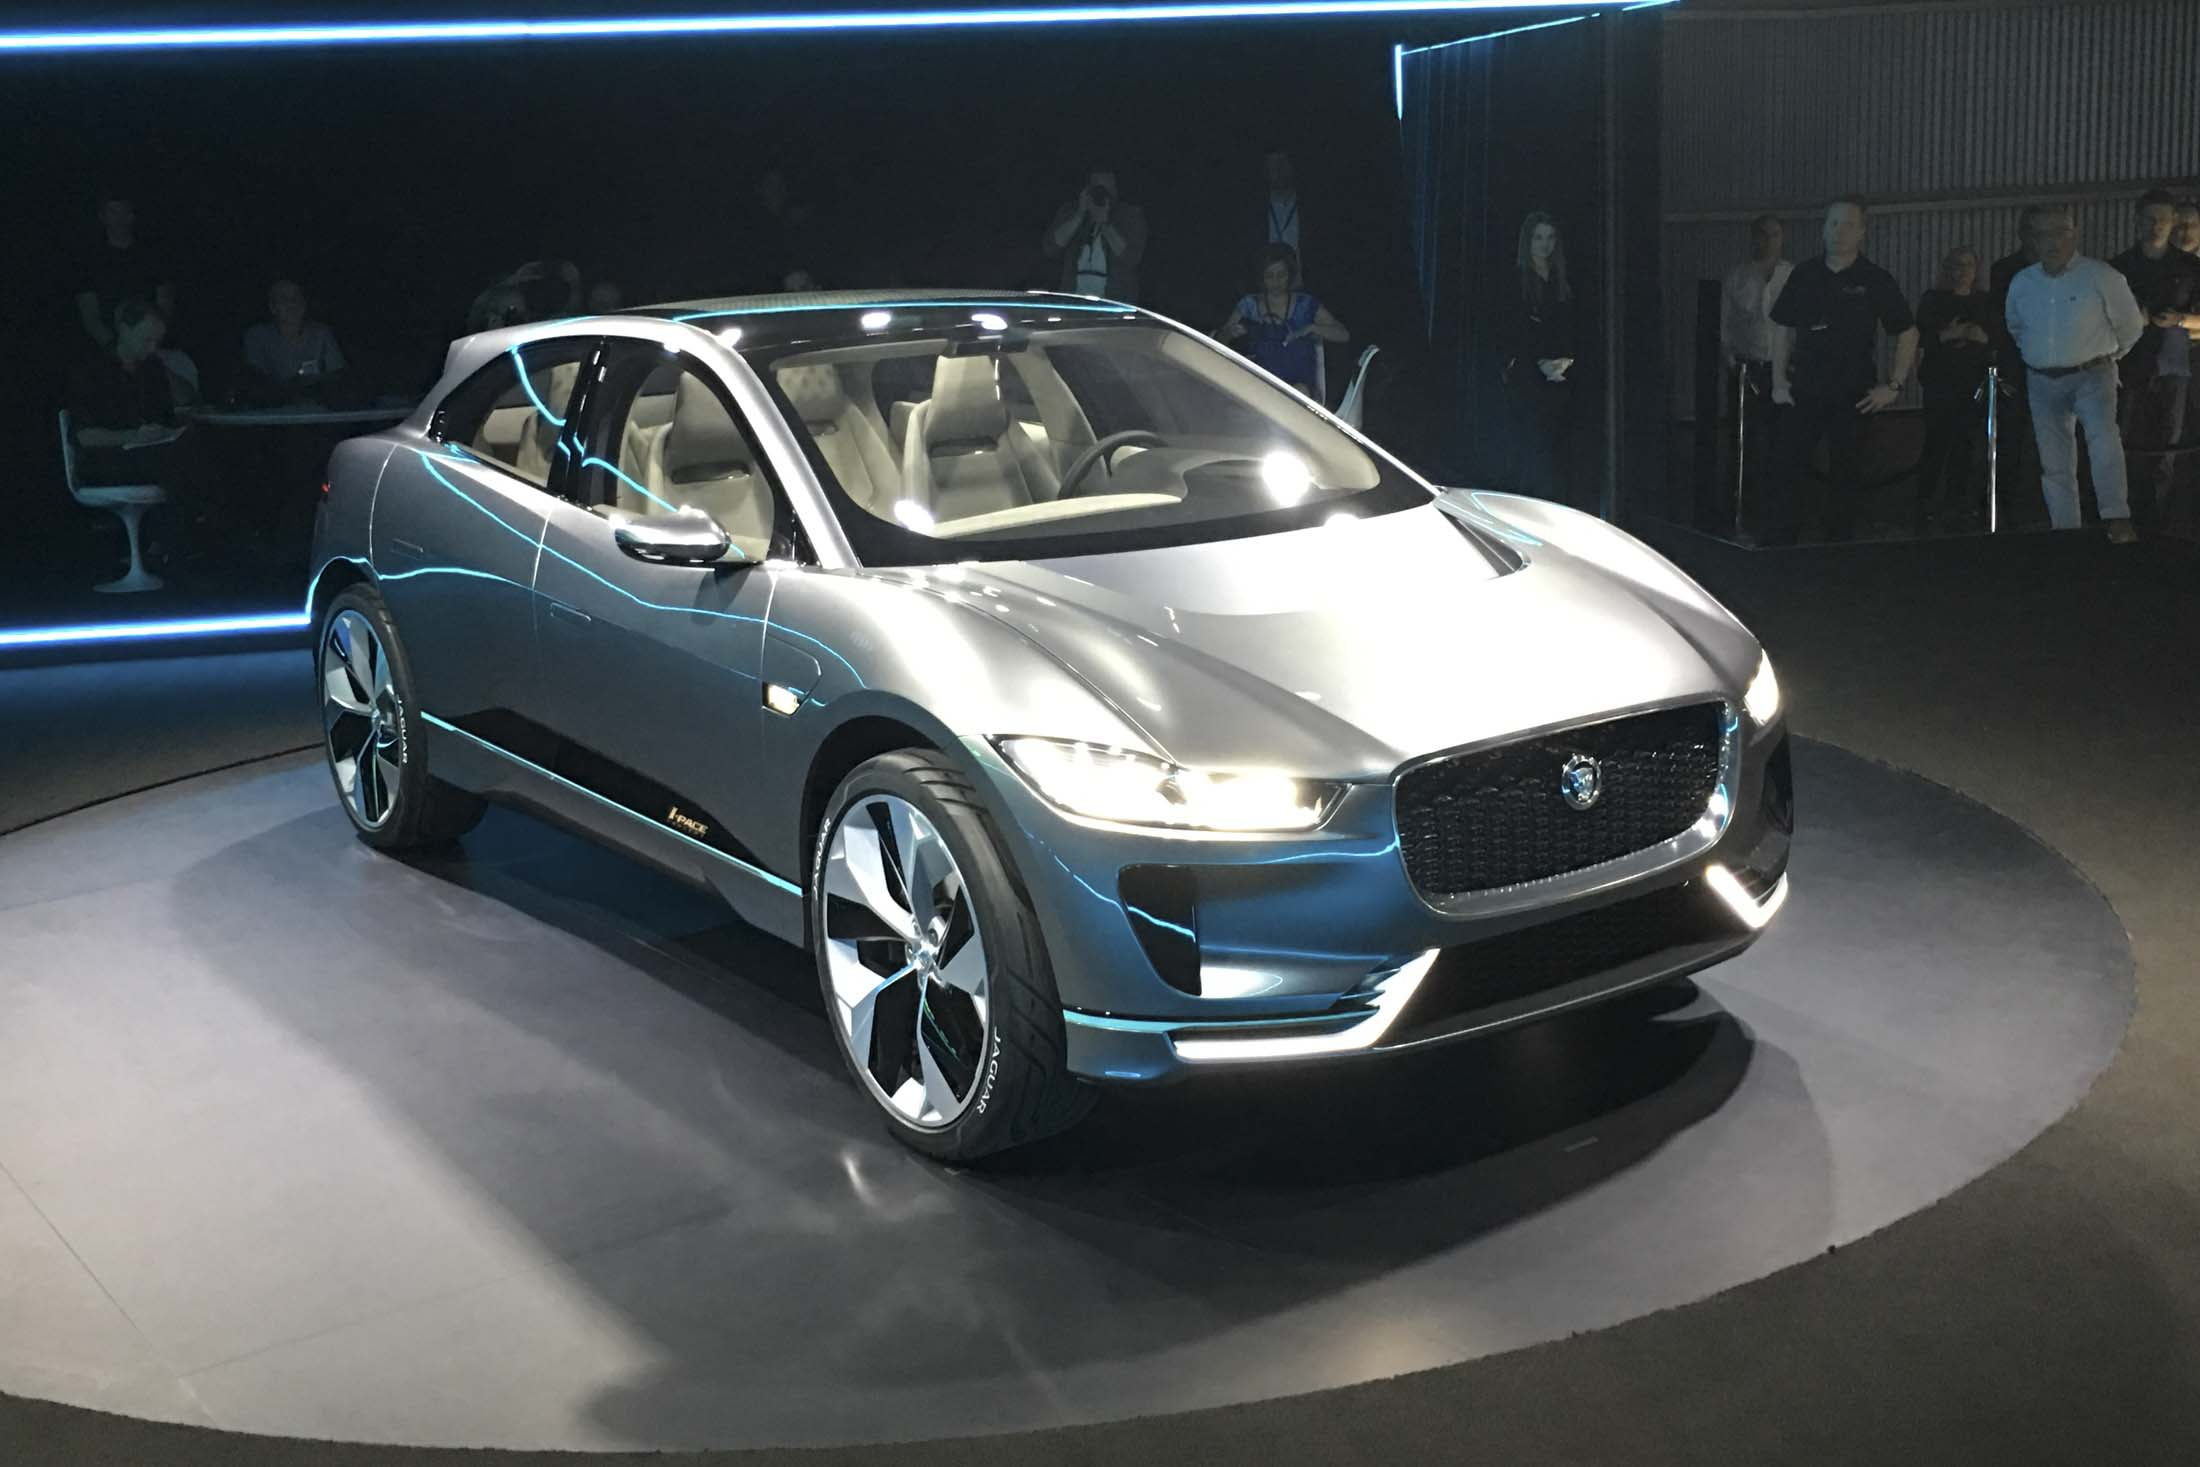 supercharged supersport india now xj car indian diesel l in versions of and scene jaguar price forum